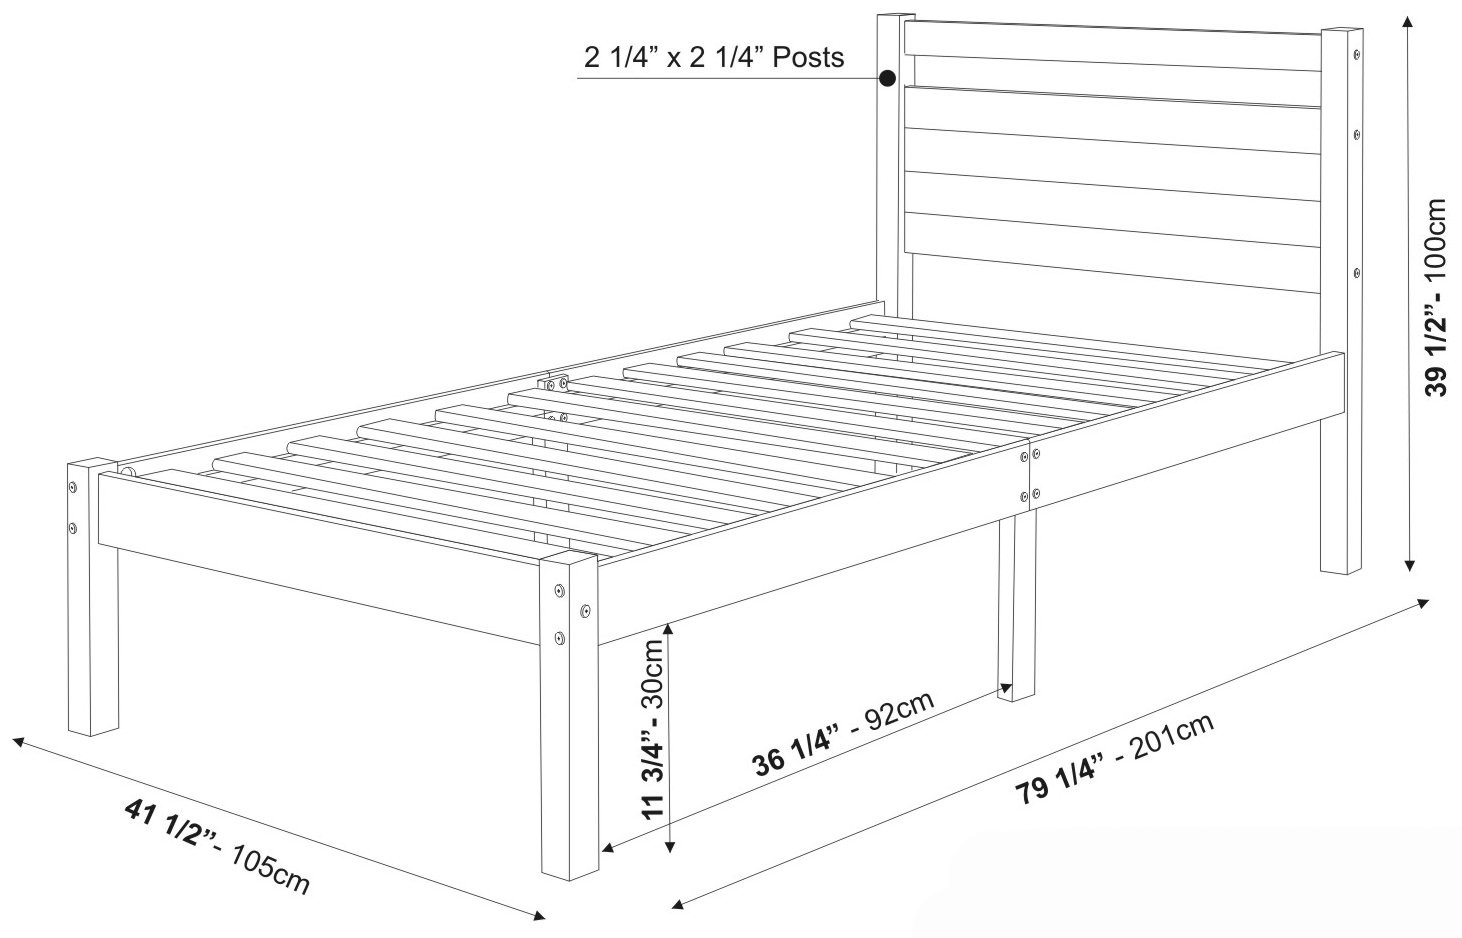 mattress drawing at getdrawings com free for personal use mattress